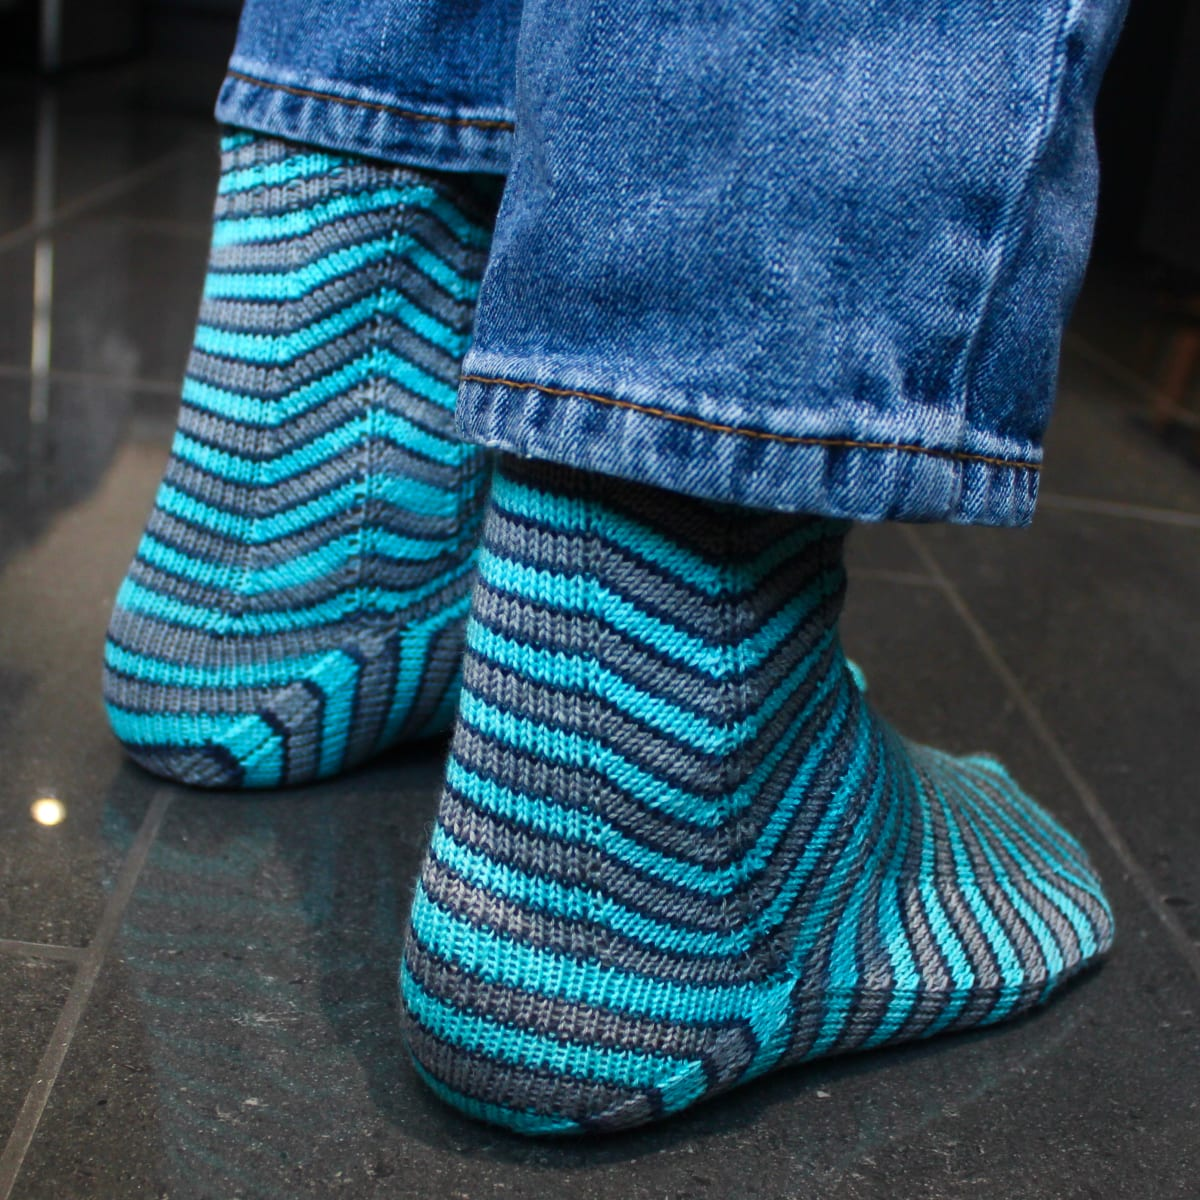 Right-side view of grey and blue socks with stripes that are distorted on the sides.